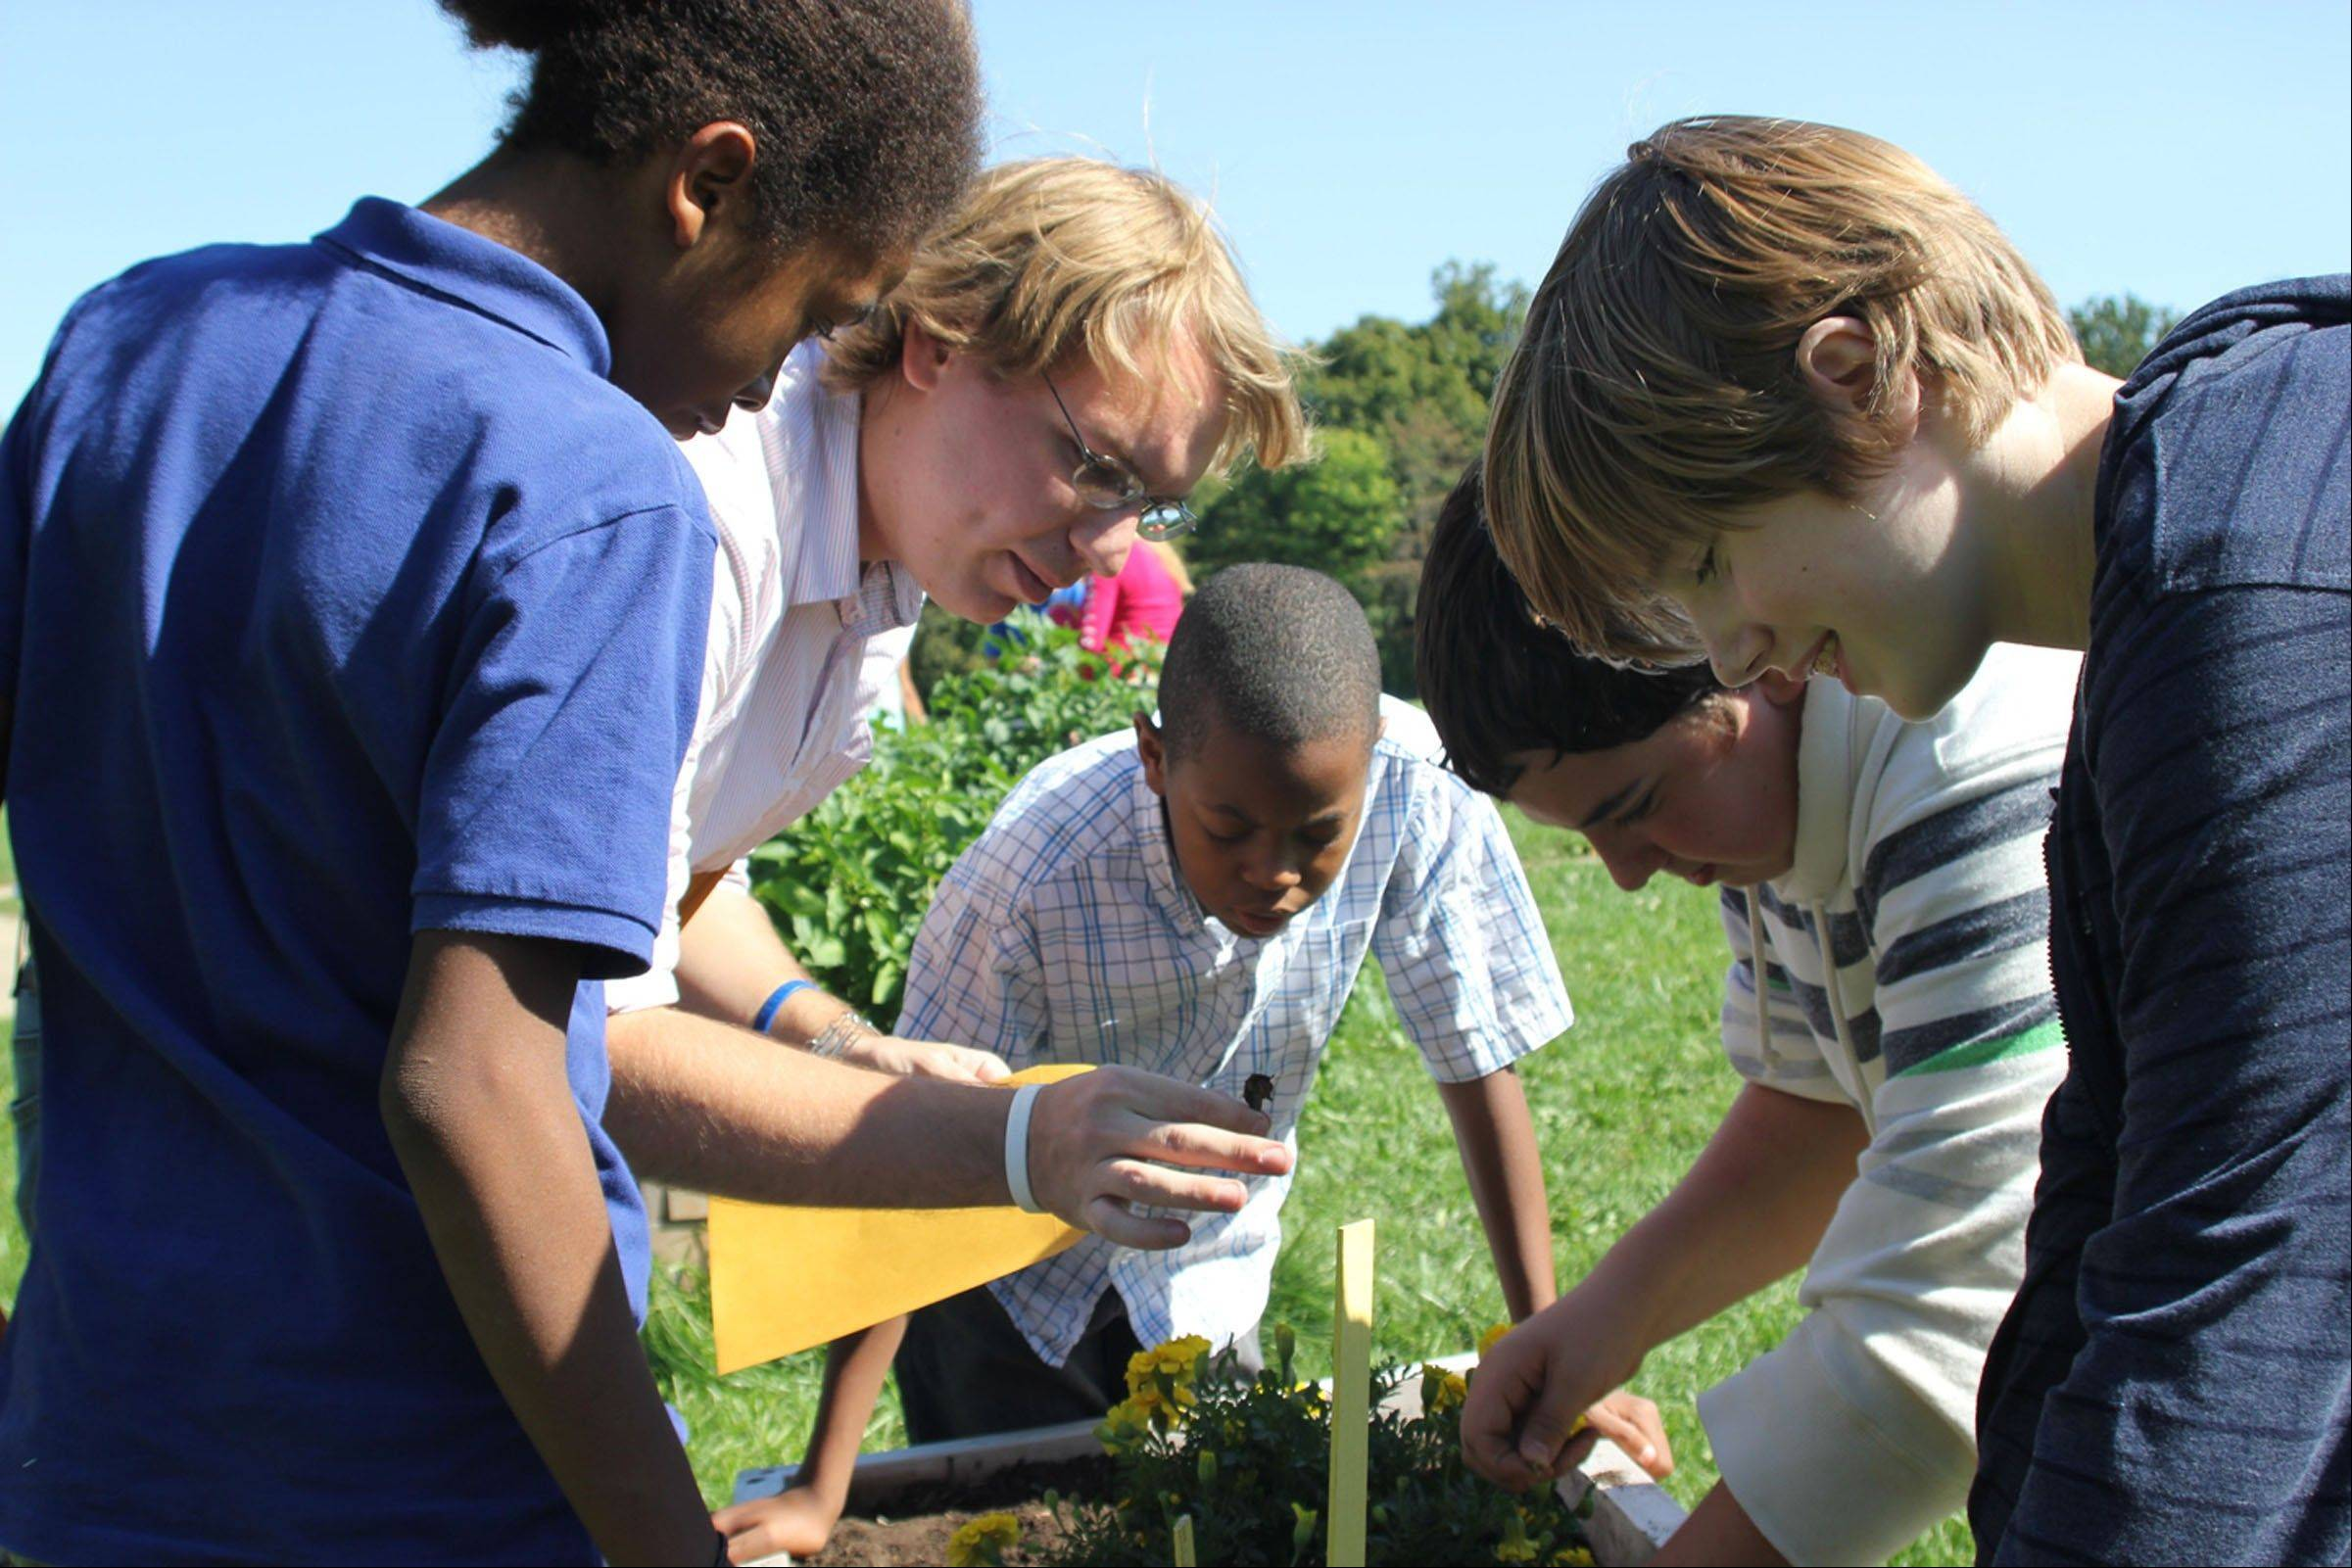 Teacher Jarrod Neuhaus, second from left, instructs a group of students in the proper method for harvesting marigold seeds at Garfield Montessori School in Decatur.